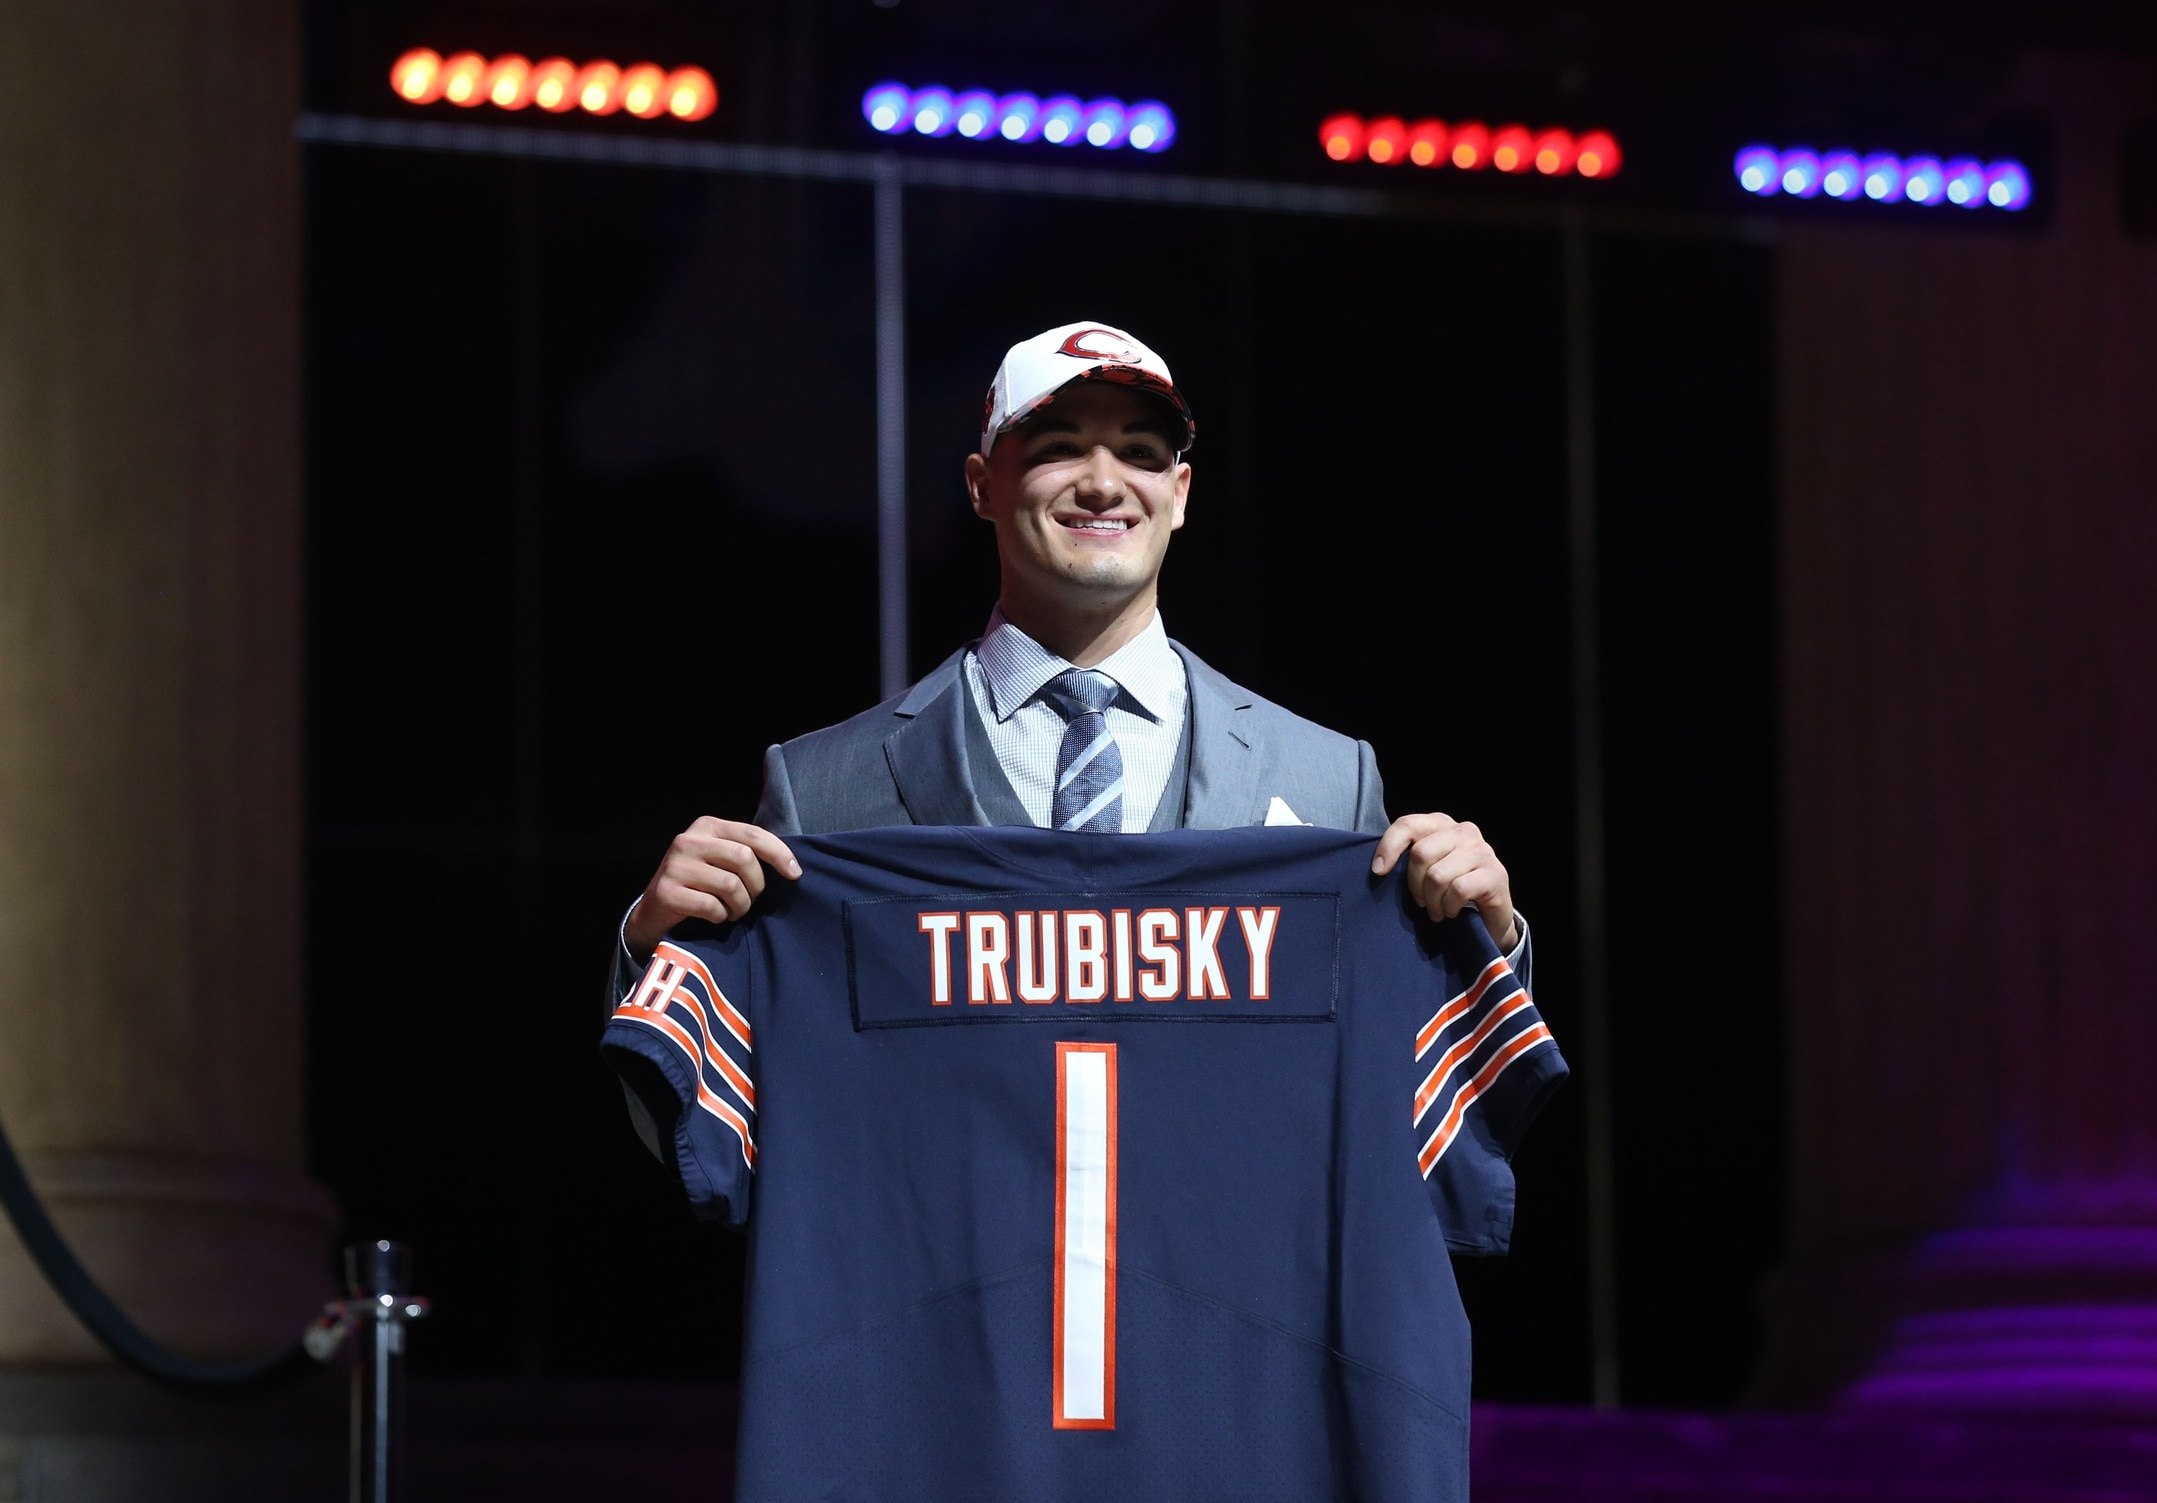 NFL rookies, MitchTrubisky (North Carolina) is selected as the number 2 overall pick to the Chicago Bears in the first round the 2017 NFL Draft at Philadelphia Museum of Art.